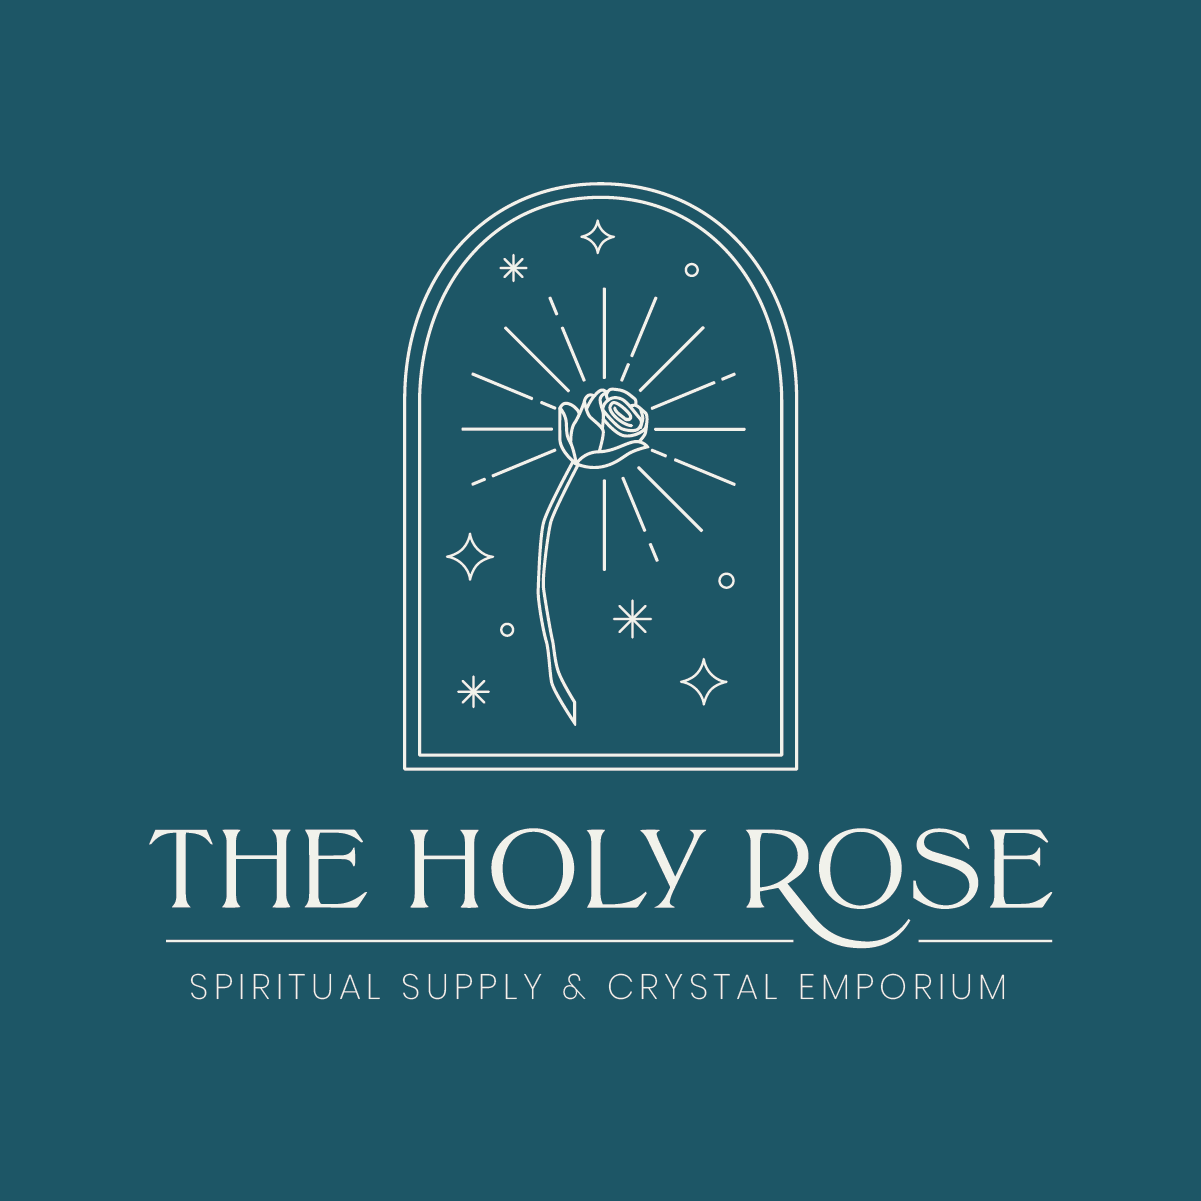 The Holy Rose